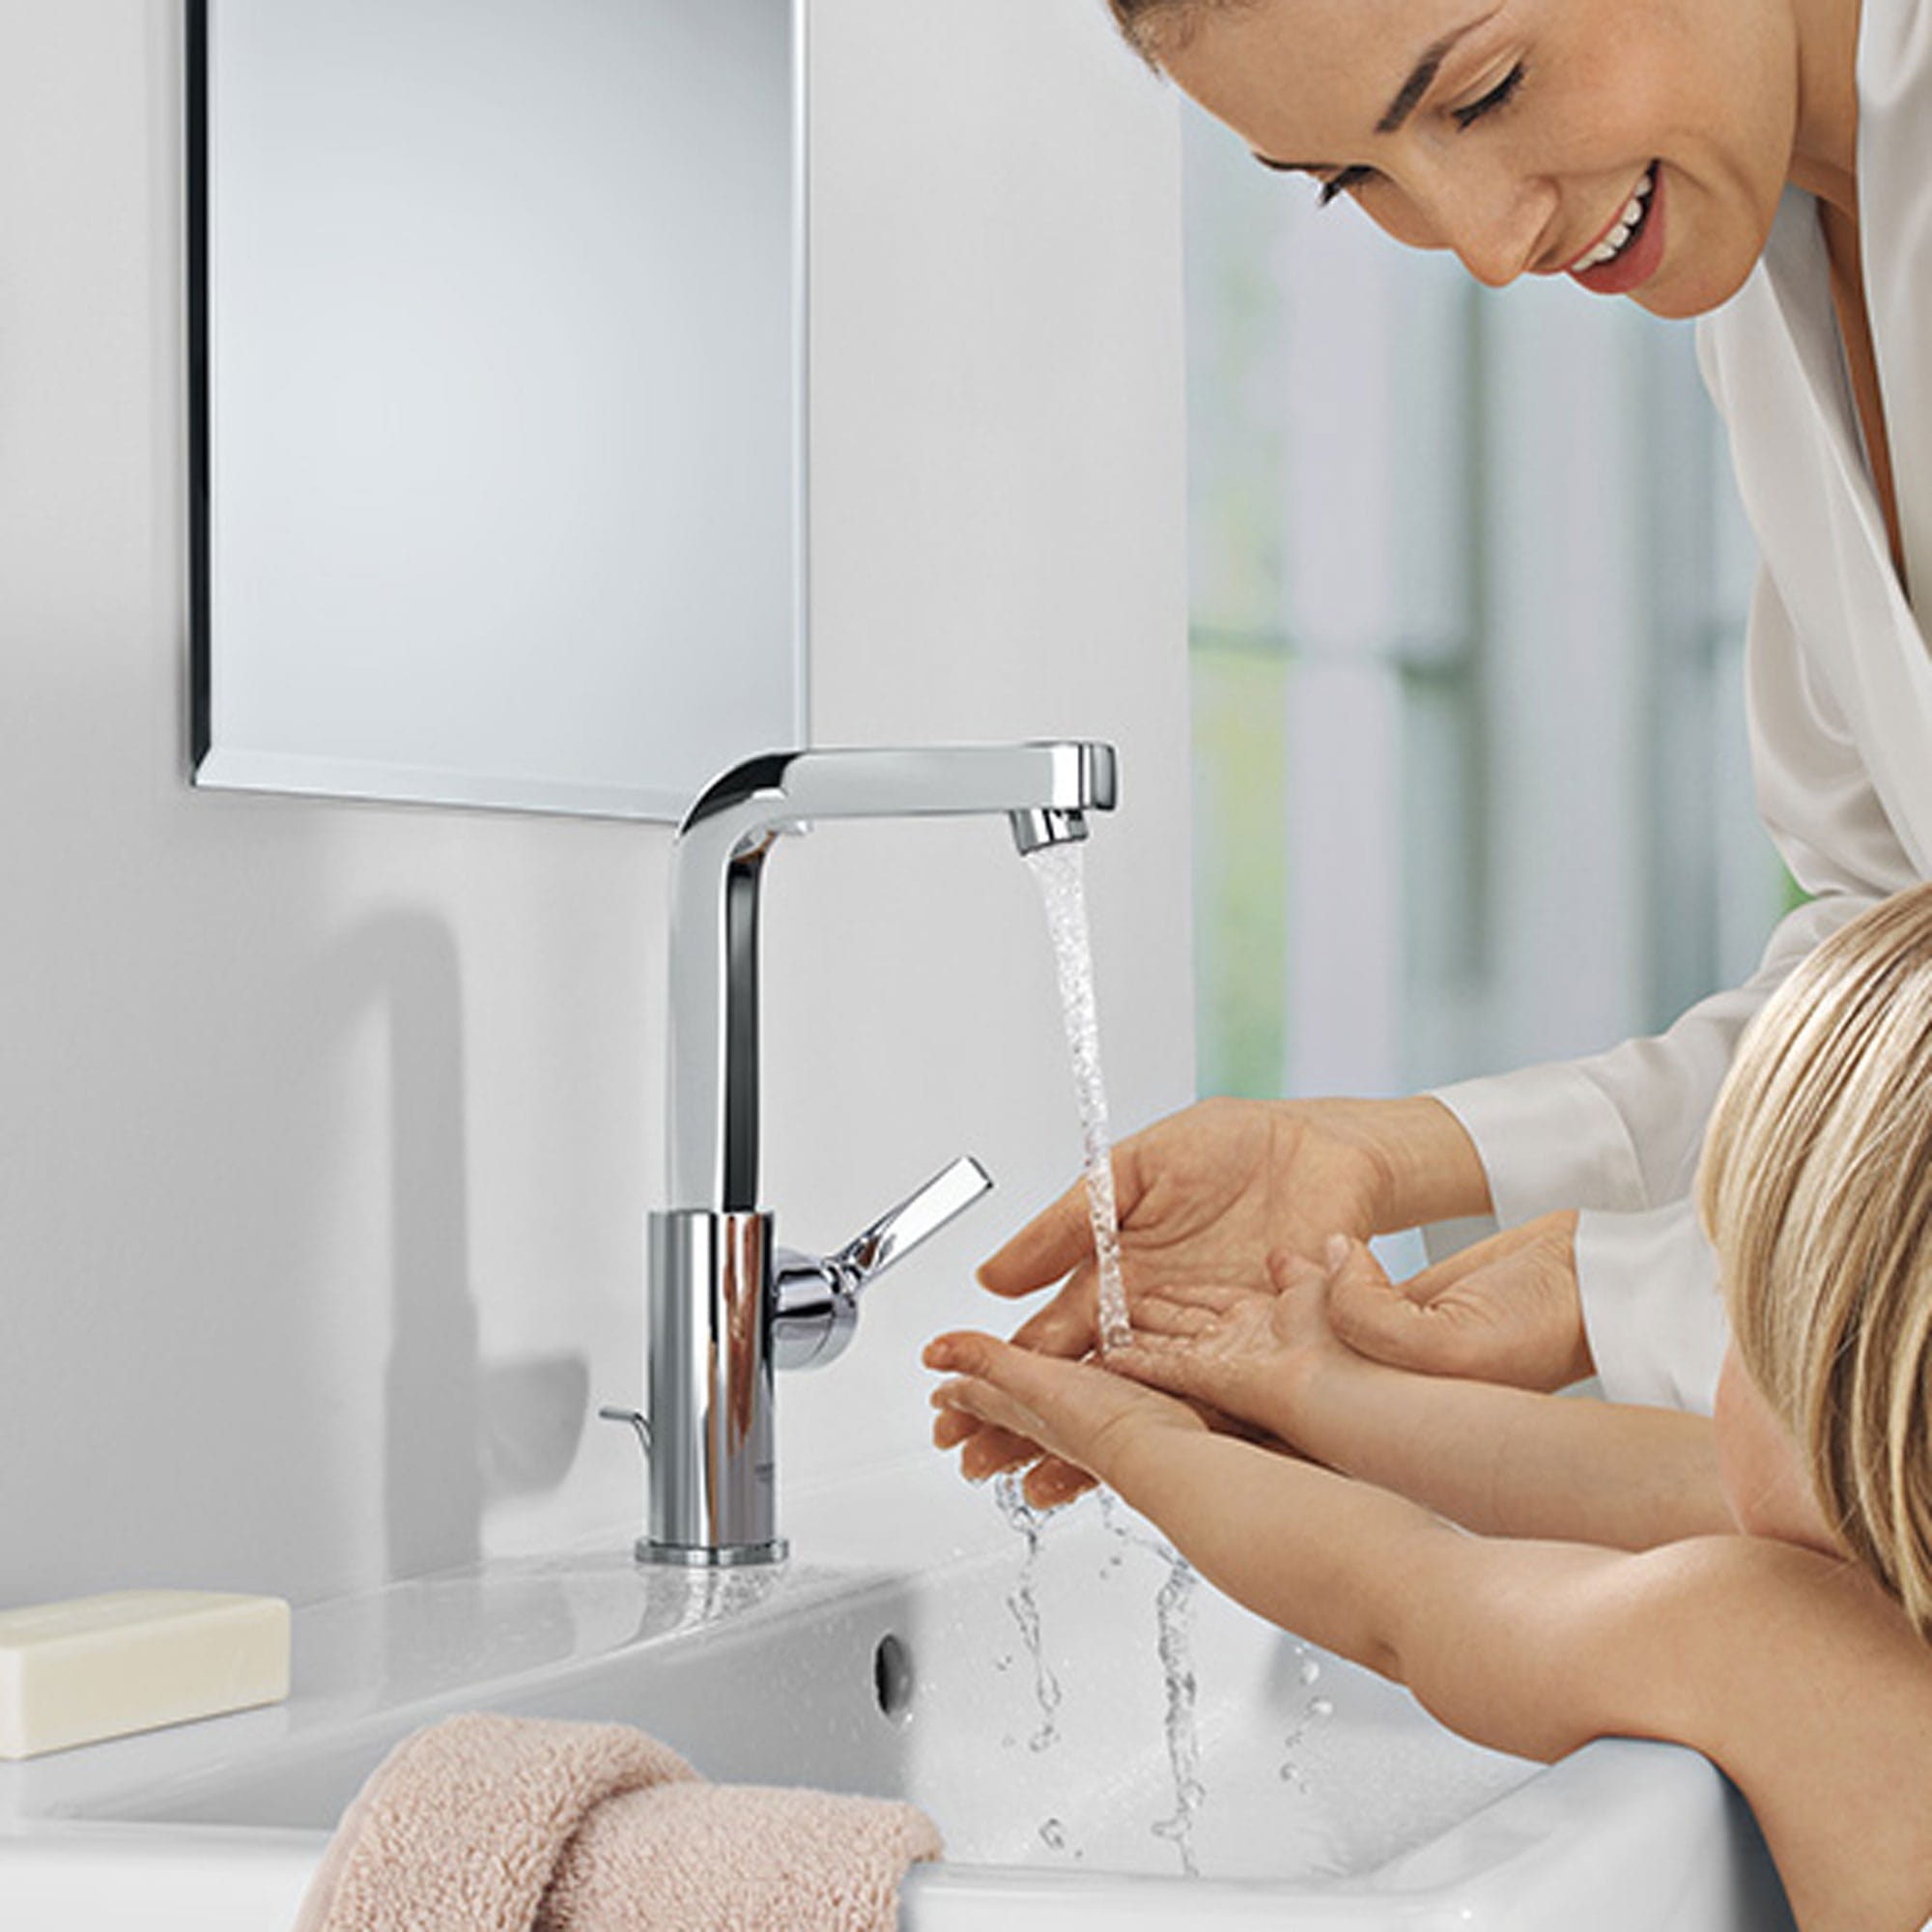 A women washing her and her child's hands under a grohe faucet.